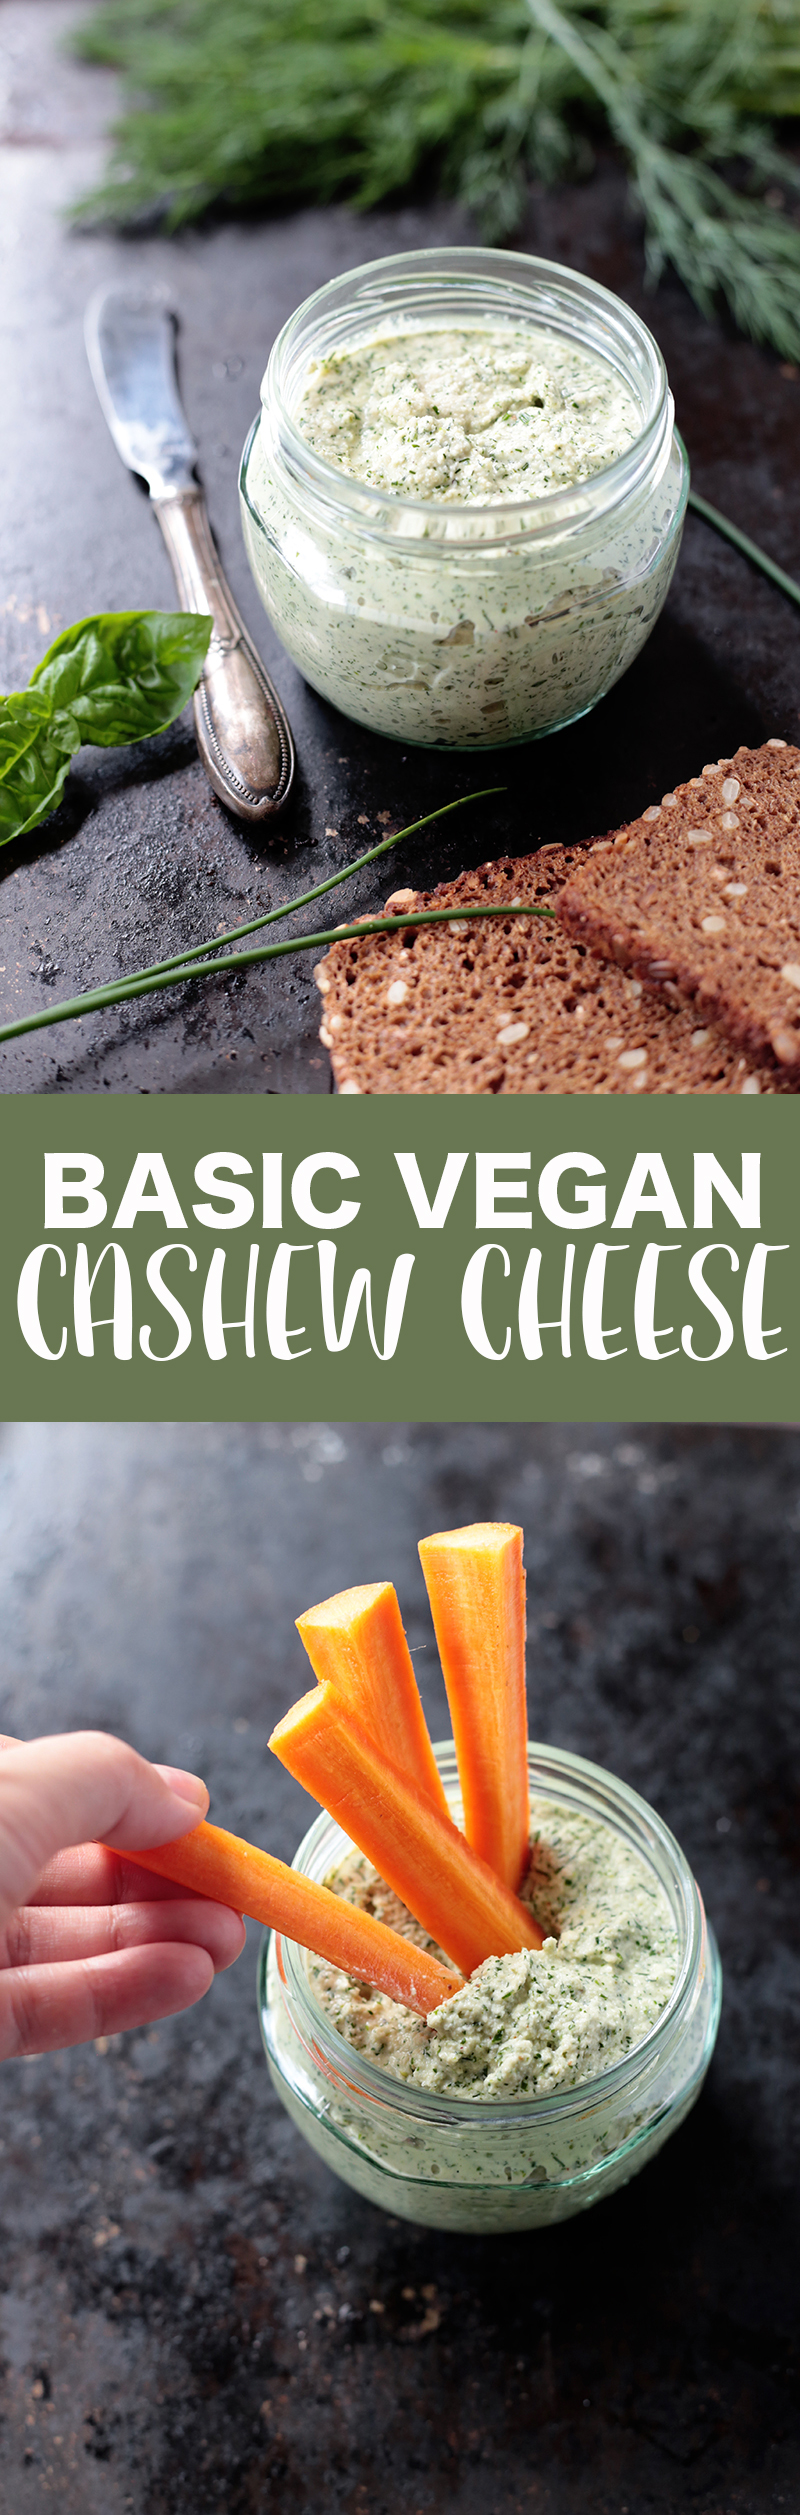 Basic Vegan Cashew Cheese